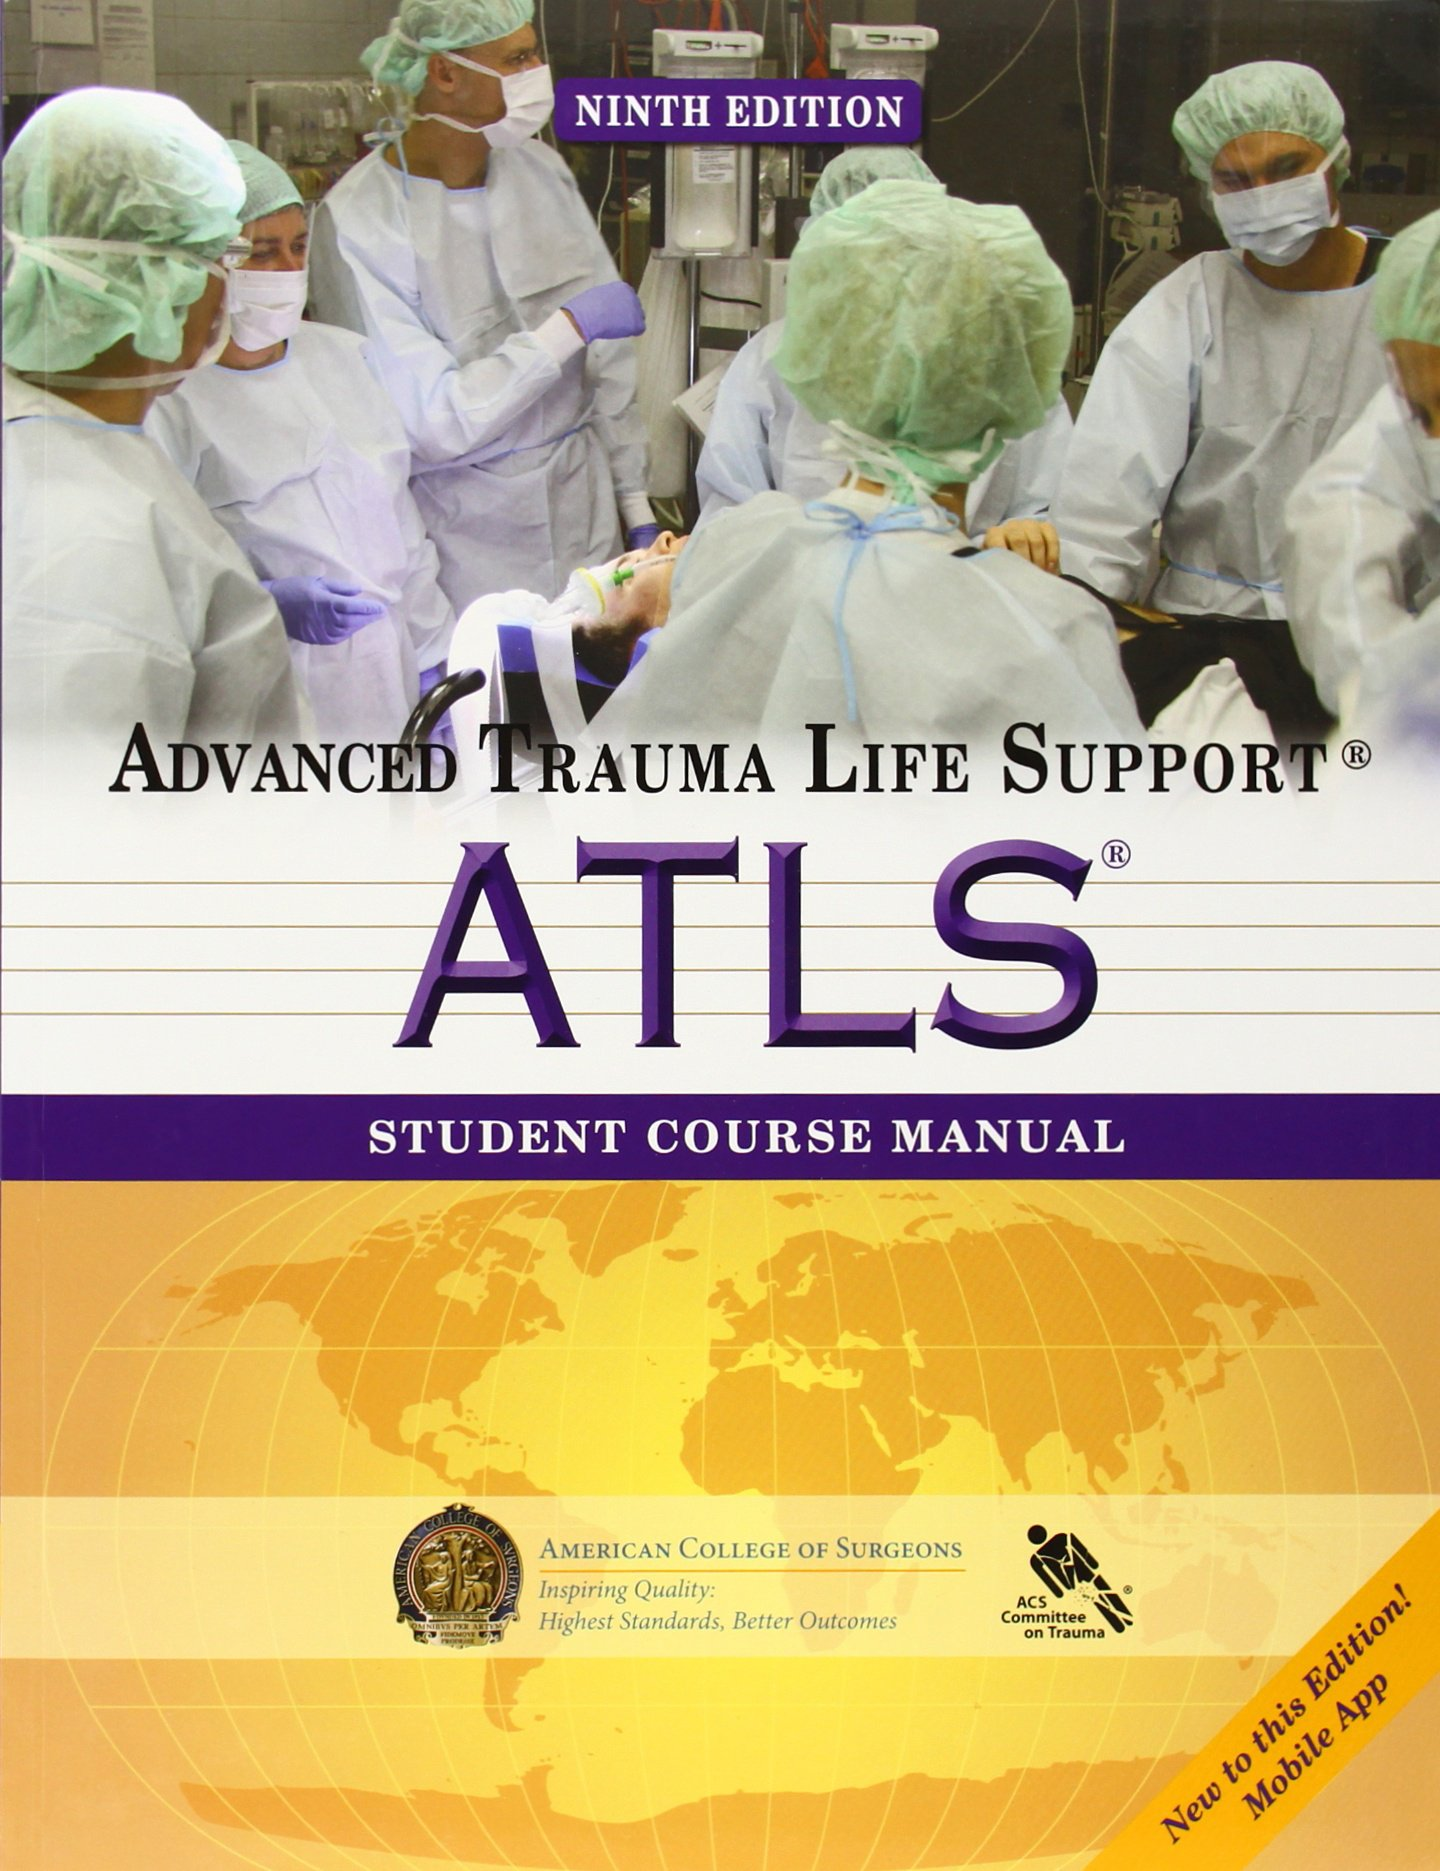 Buy Atls Student Course Manual: Advanced Trauma Life Support Book Online at  Low Prices in India | Atls Student Course Manual: Advanced Trauma Life  Support ...